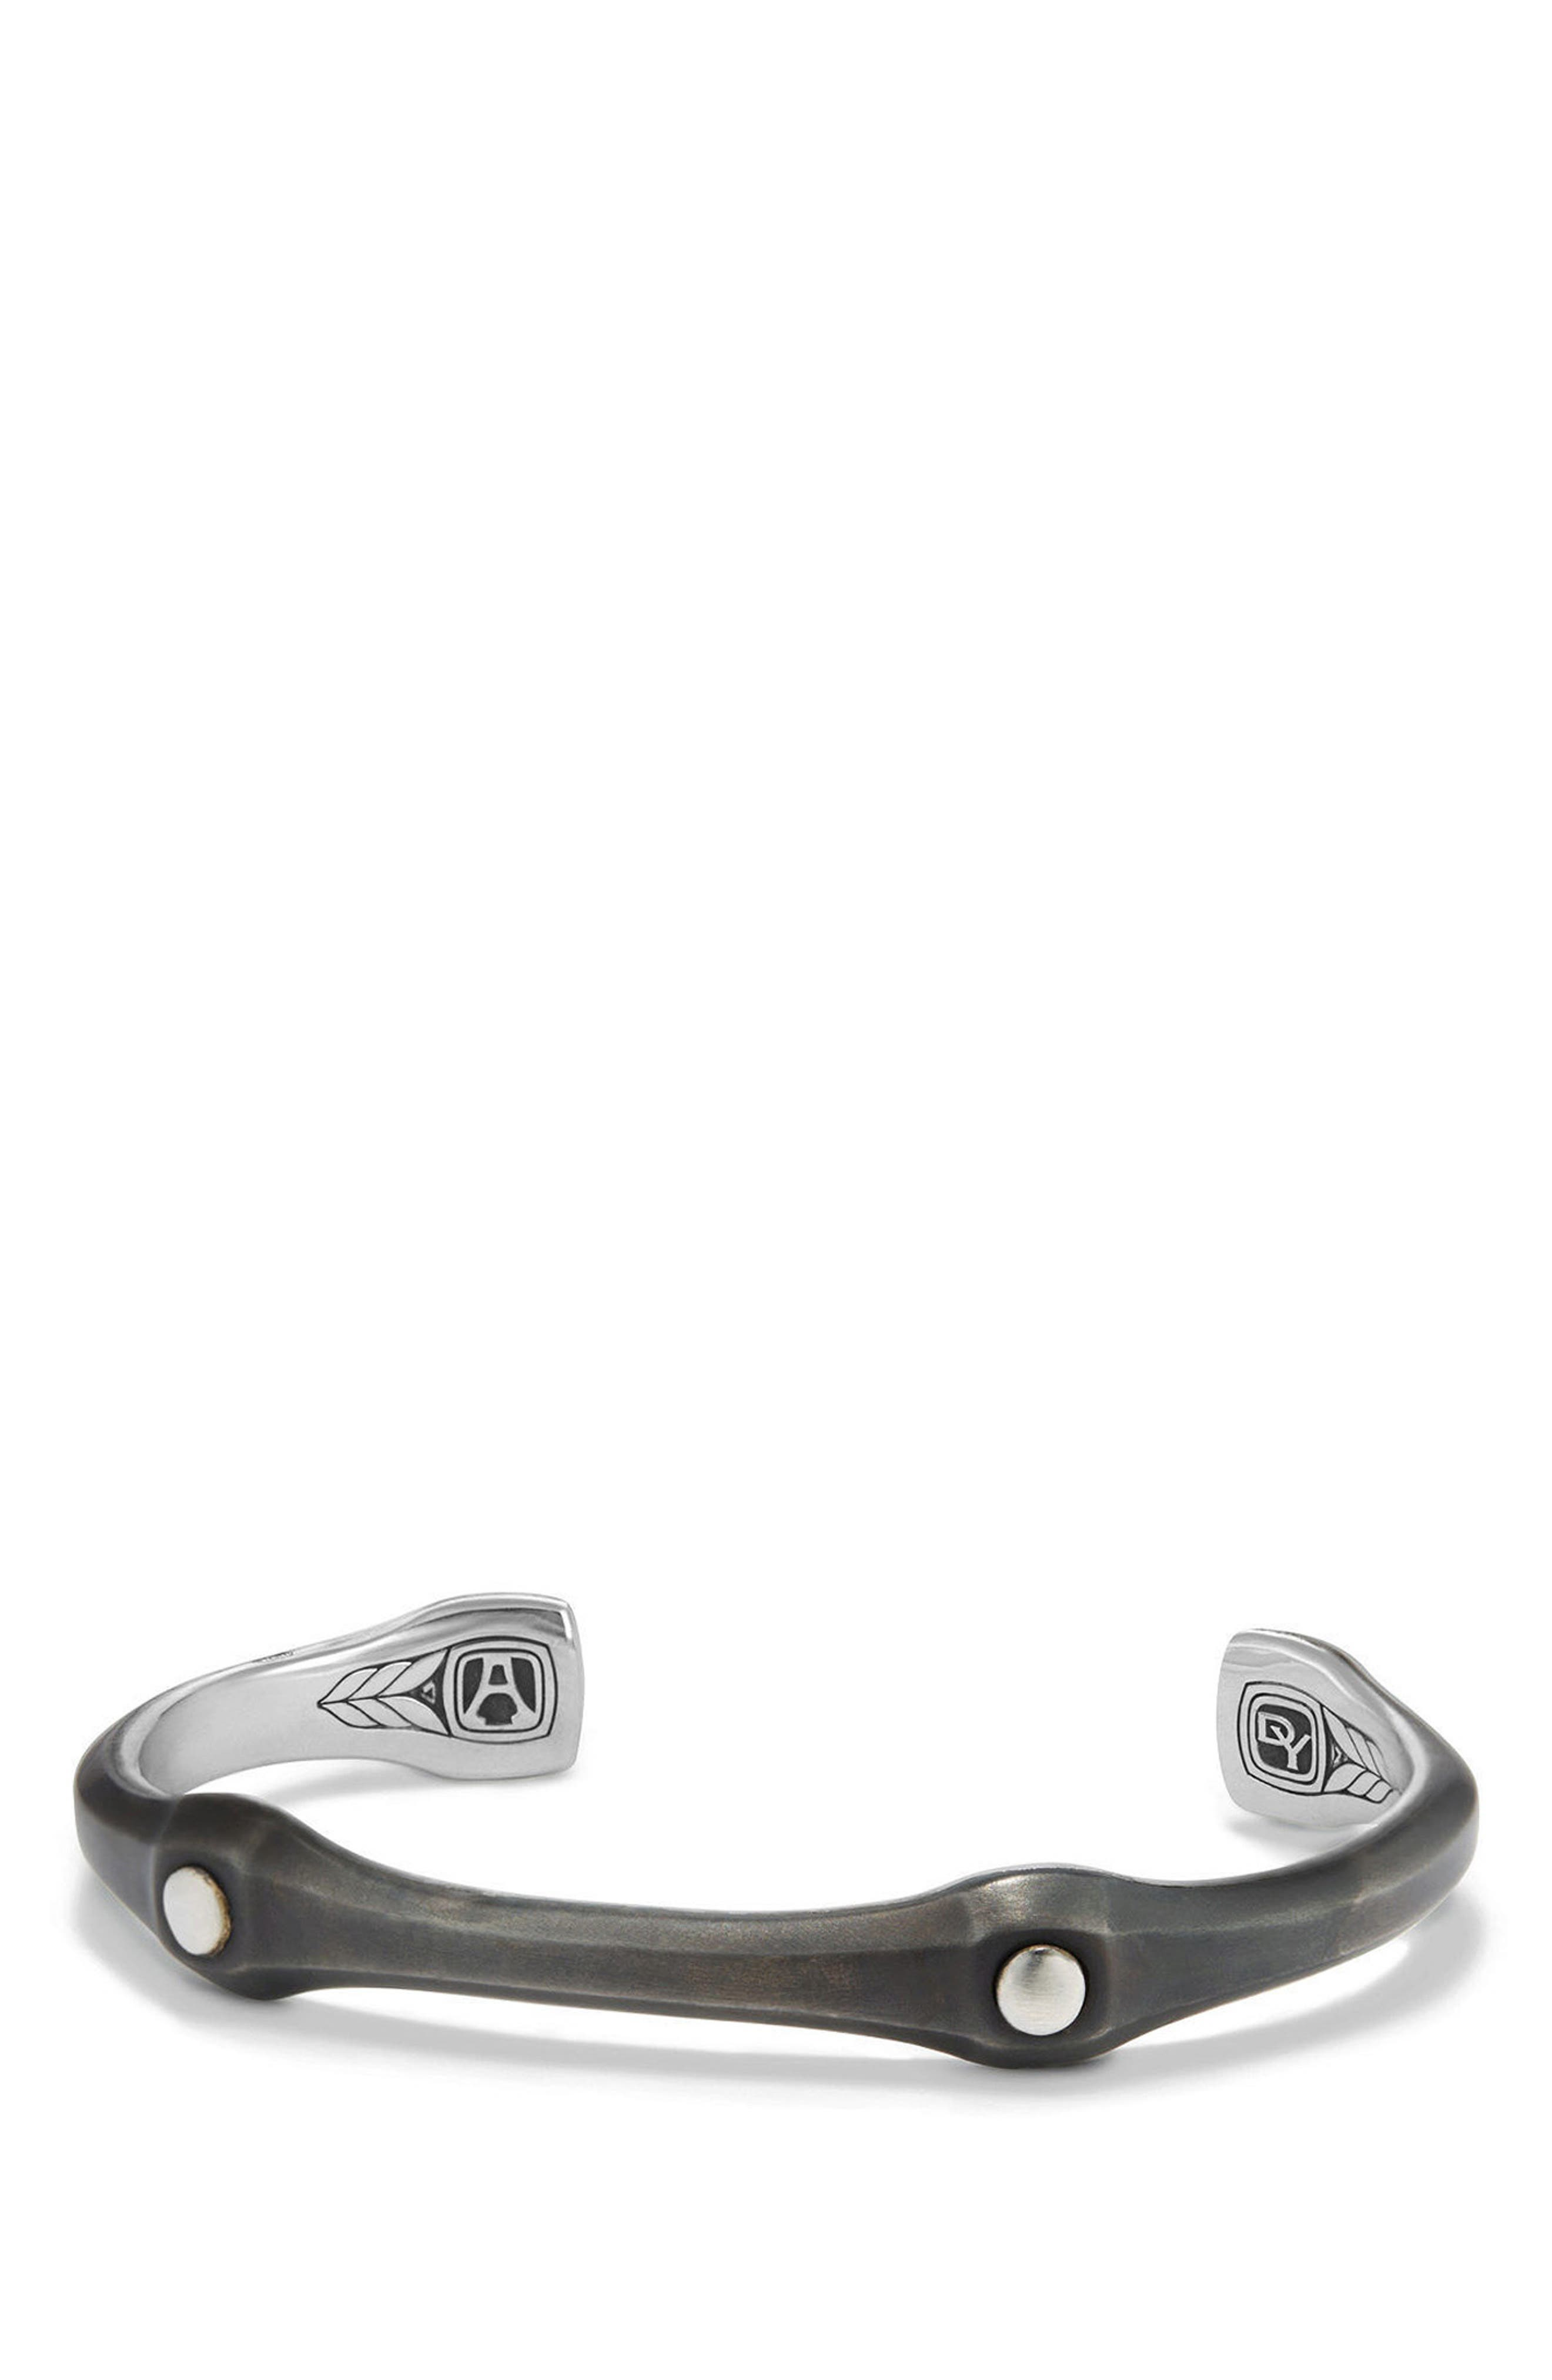 Anvil Cuff Bracelet, 10.5mm,                             Main thumbnail 1, color,                             SILVER/ STEEL